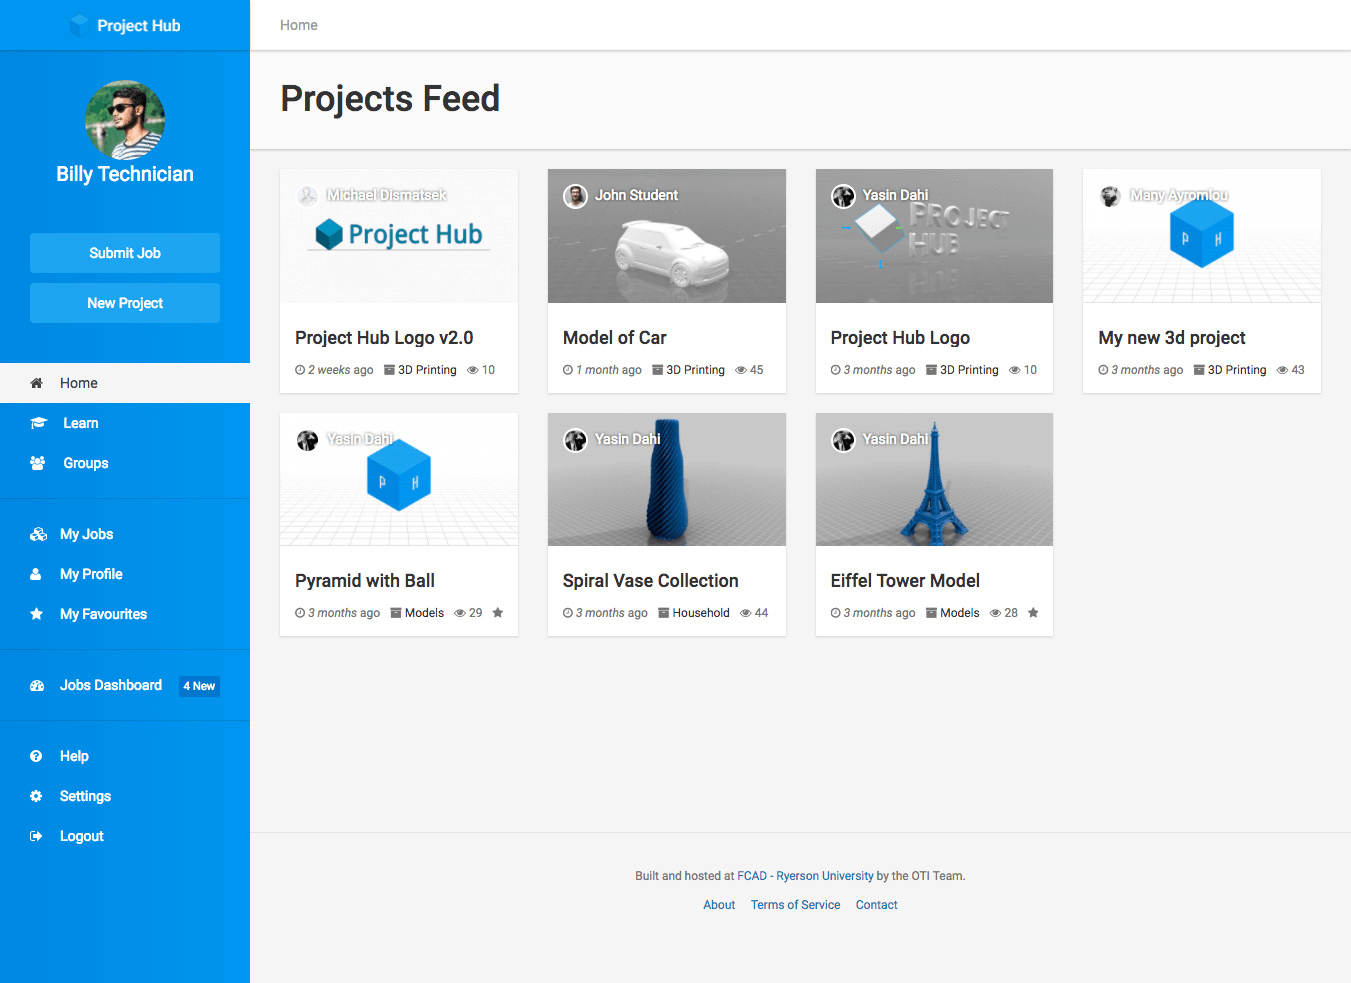 Projects Feed page showing several items shared by users in a card grid layout